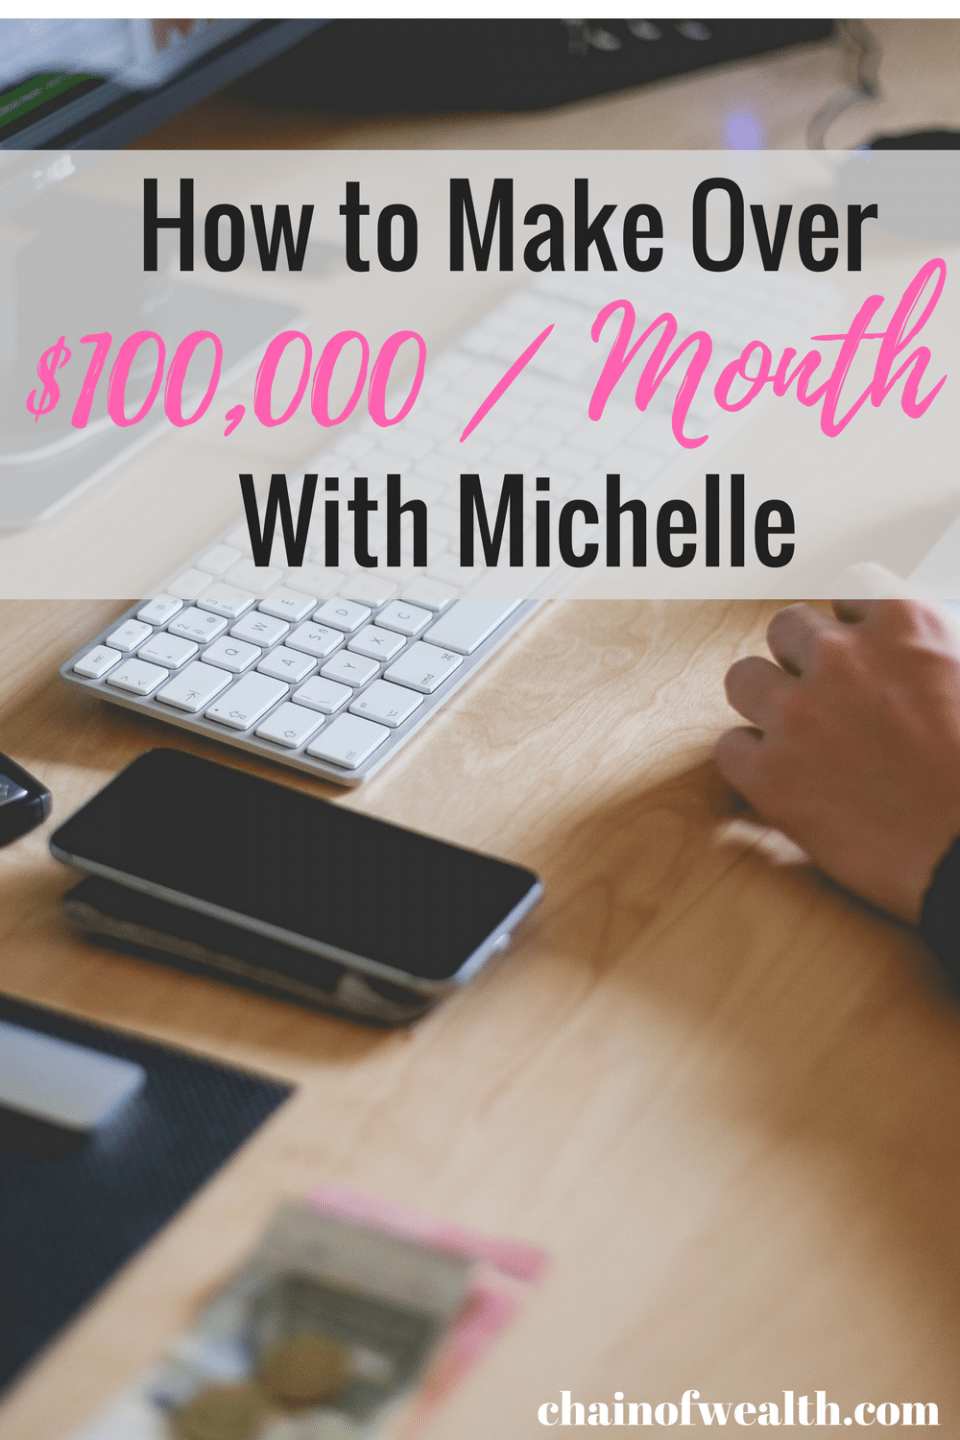 make over $100,000 a mont with michelle